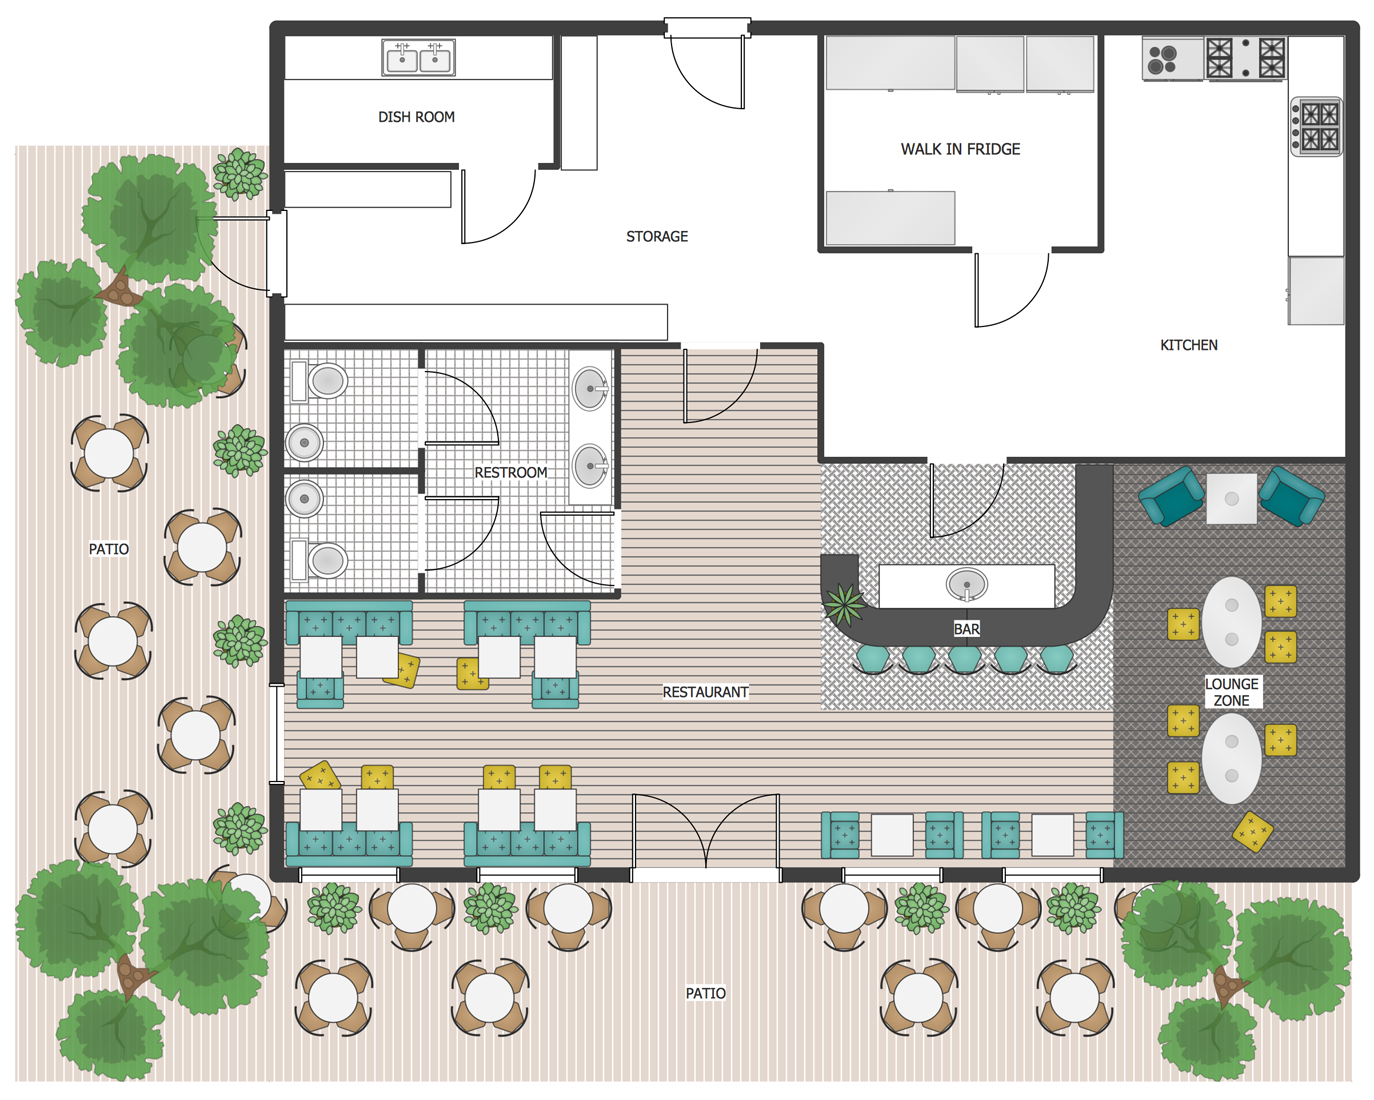 Patio Plan Conceptdraw Pro Extended With The Cafe And Restaurant Floor Plans Solution Libraries C Restaurant Plan Restaurant Floor Plan Floor Planner